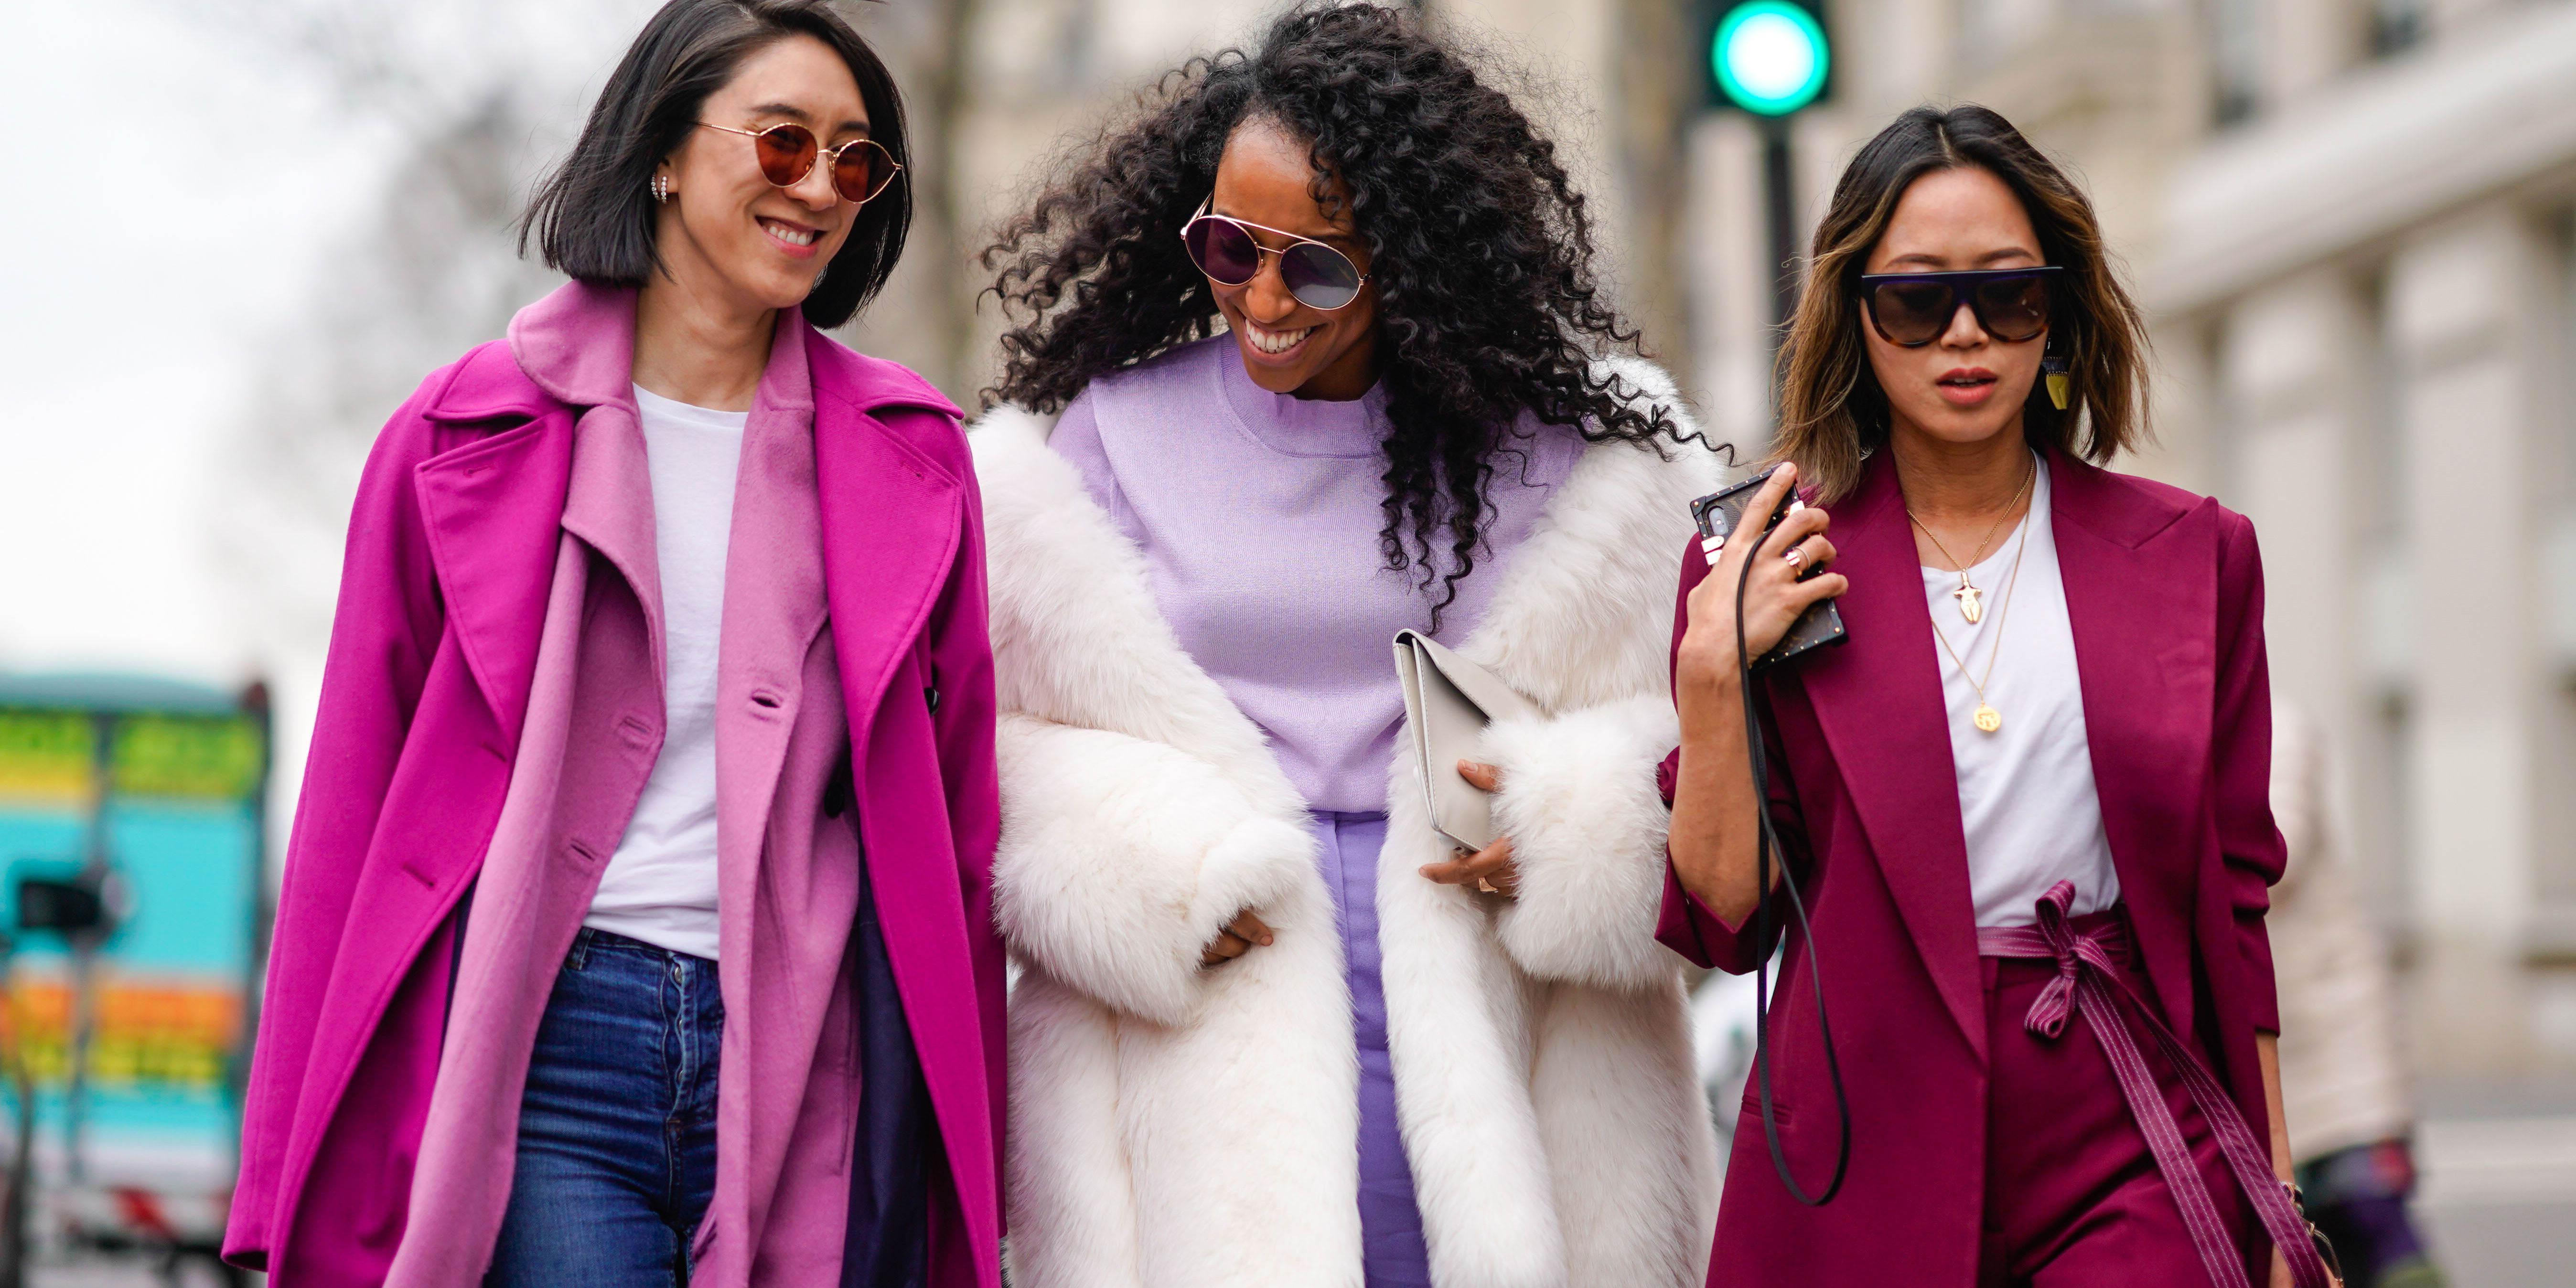 25 Winter Outfit Ideas You Can Wear To Work